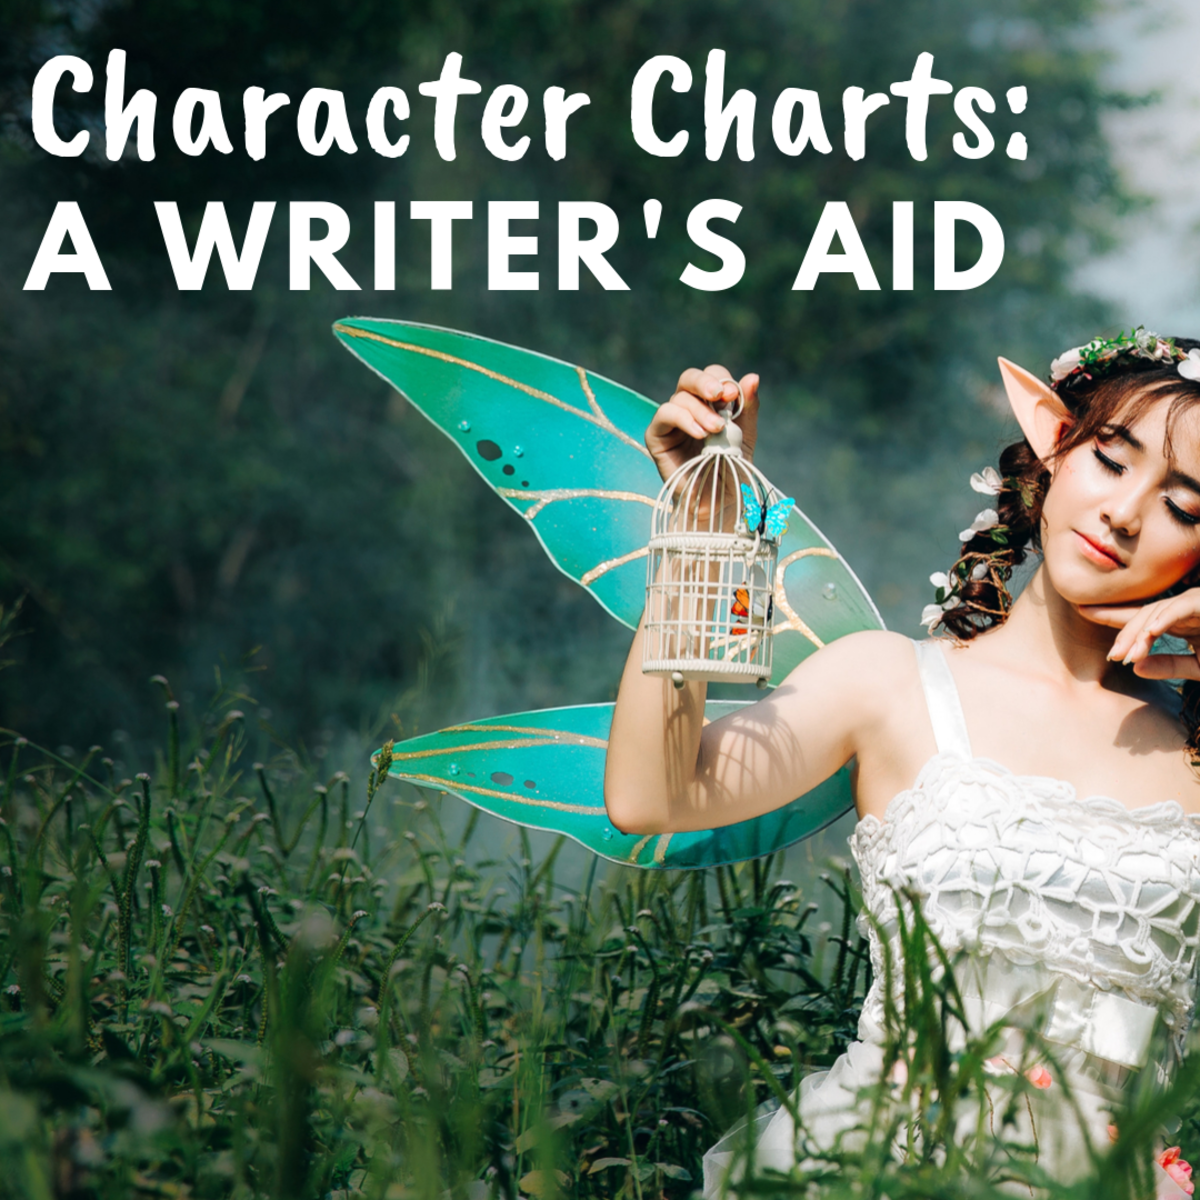 Character Charts: A Writer's Aid